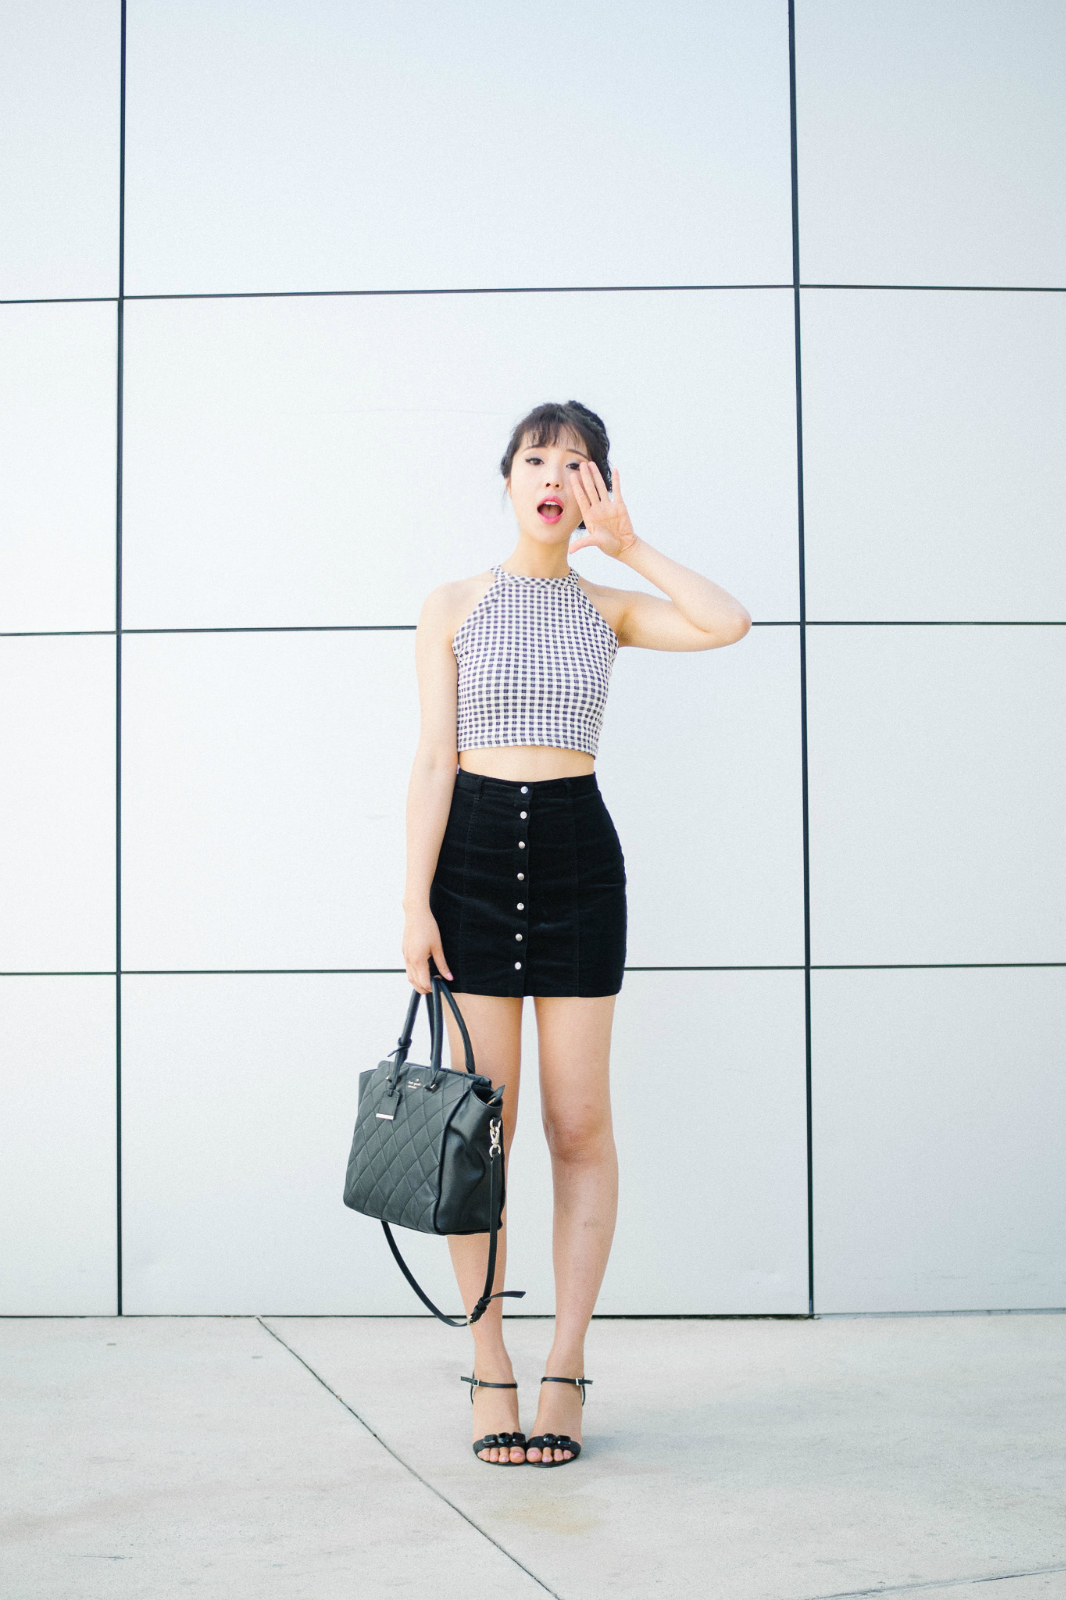 asian girl, mxo, networker, cno, internship, korea, seoul, yonsei, yonsei study abroad, uceap, ucla, los angeles, fashion blogger, model, asian style, korean style, japanese, outfit, ootd, hairstyle, bun